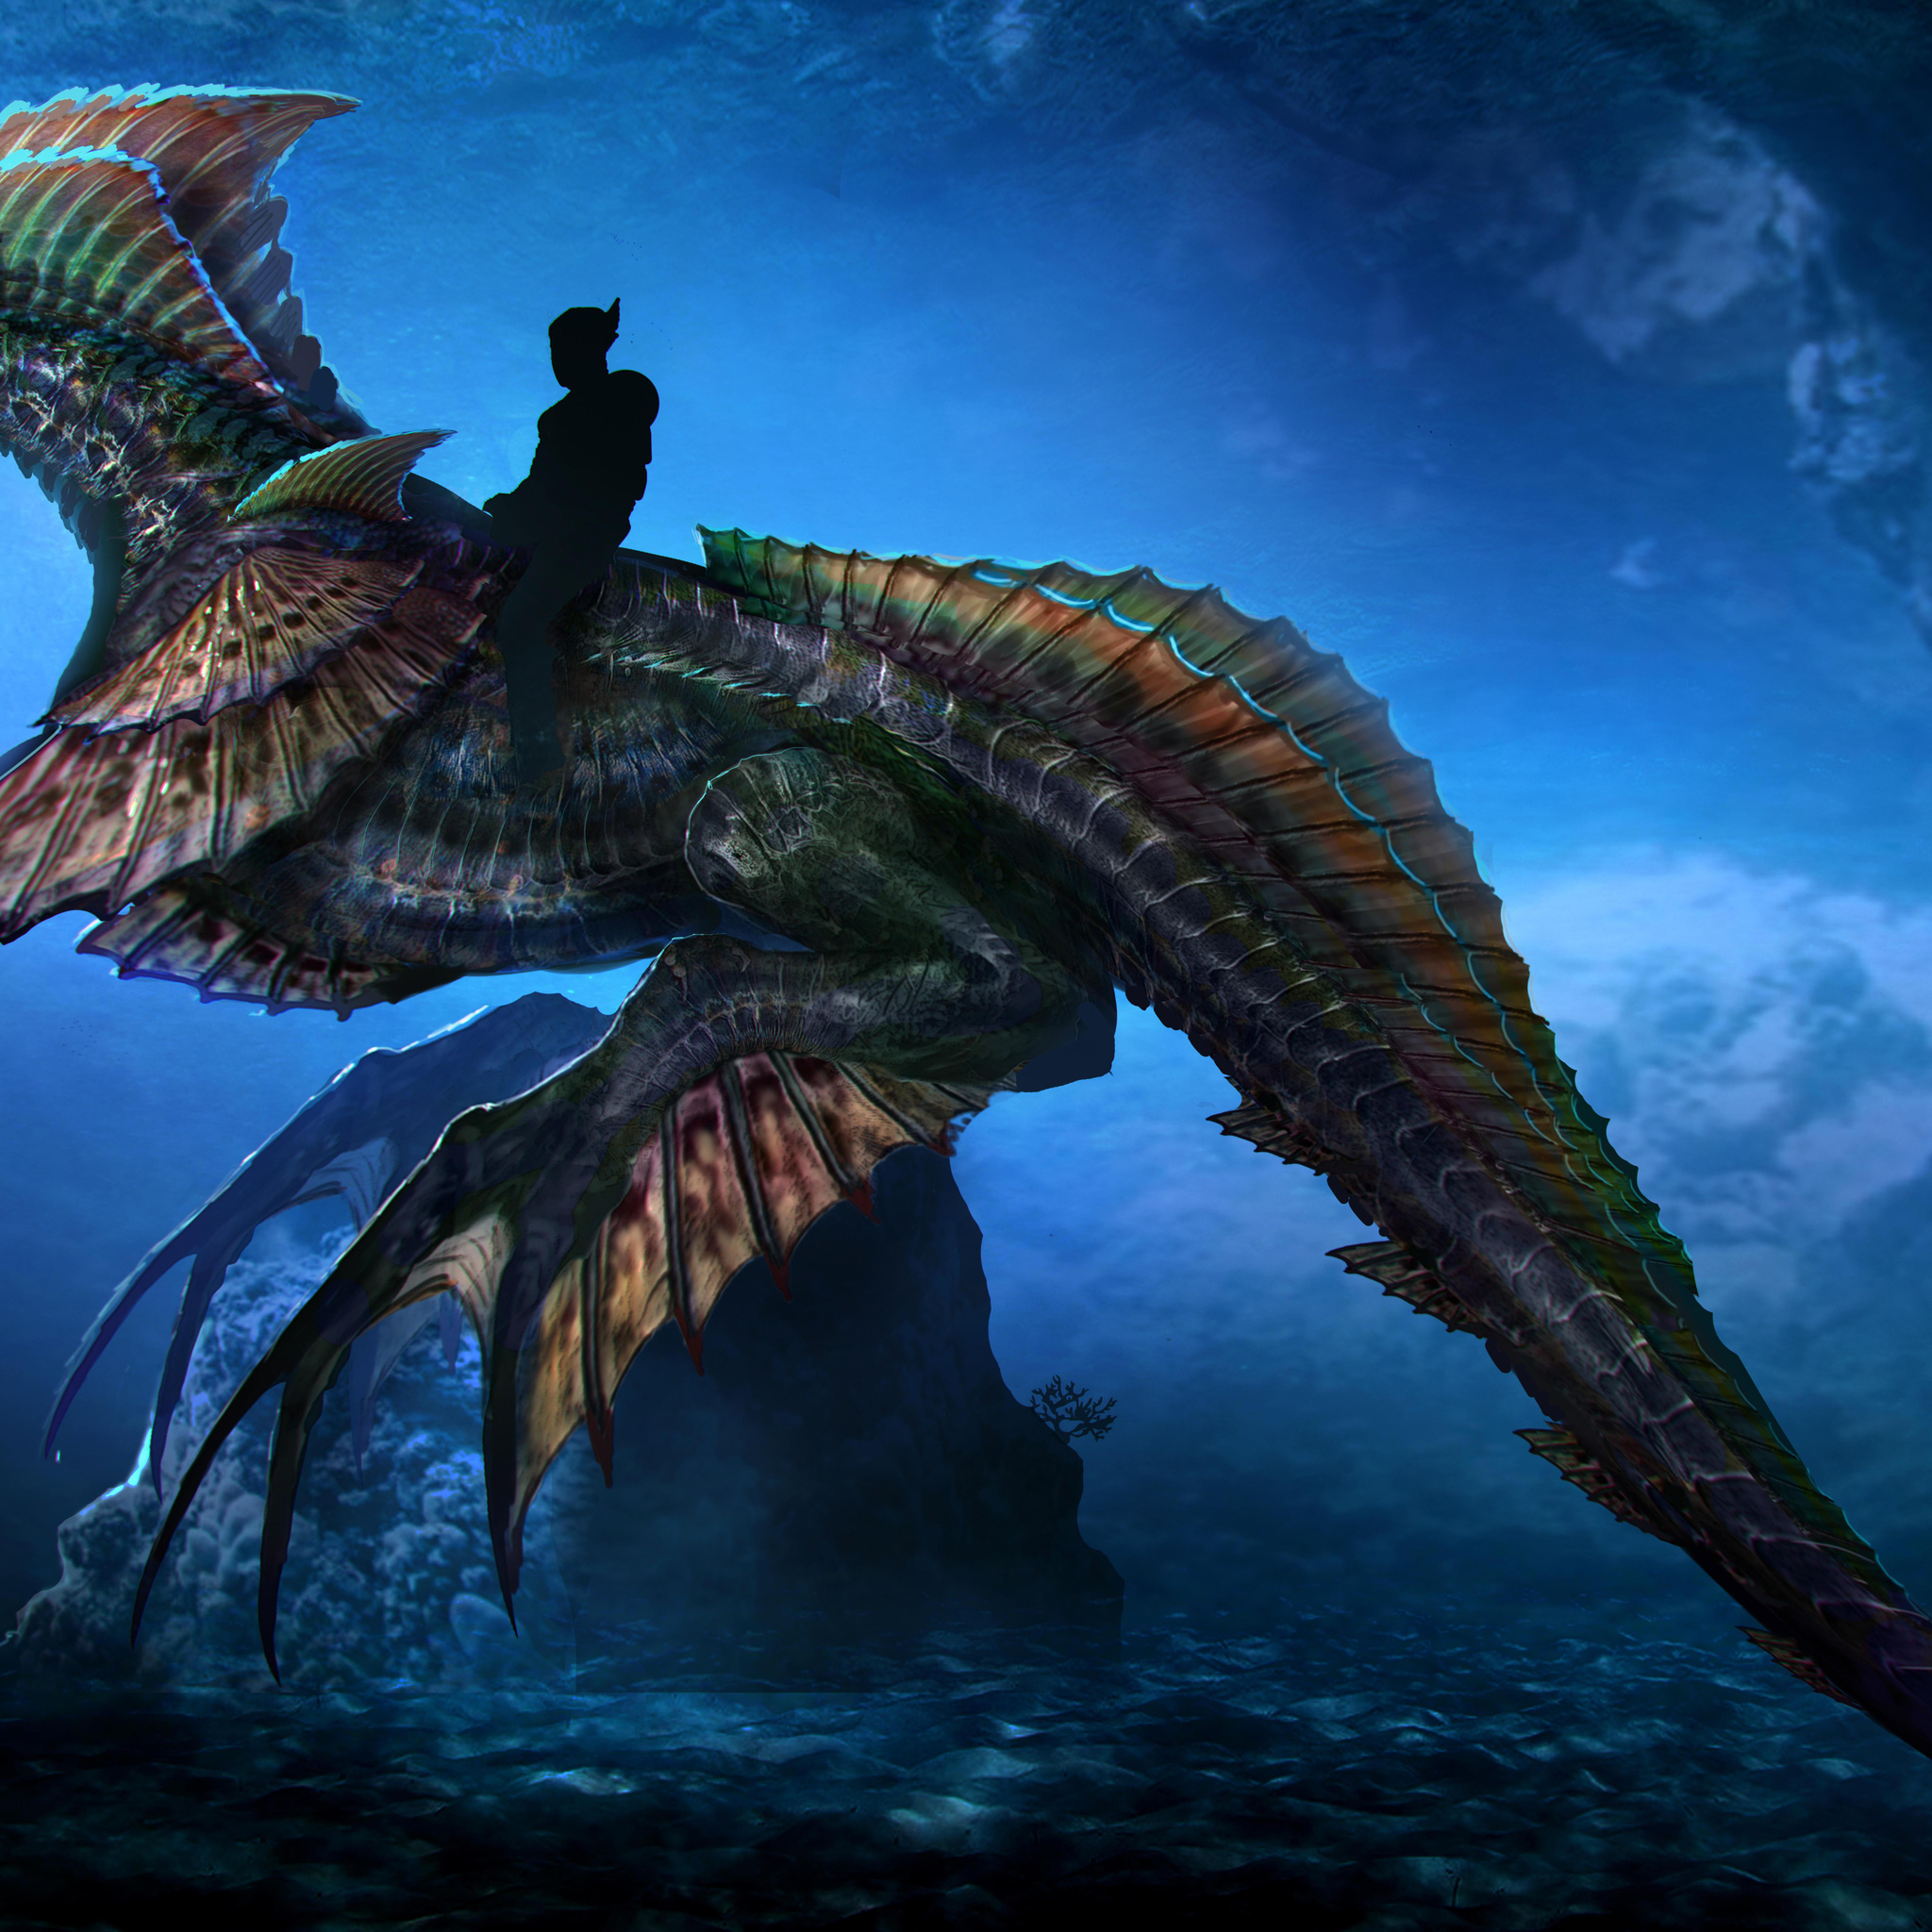 2048x2048 aquaman sea dragon concept art 10k ipad air hd 4k